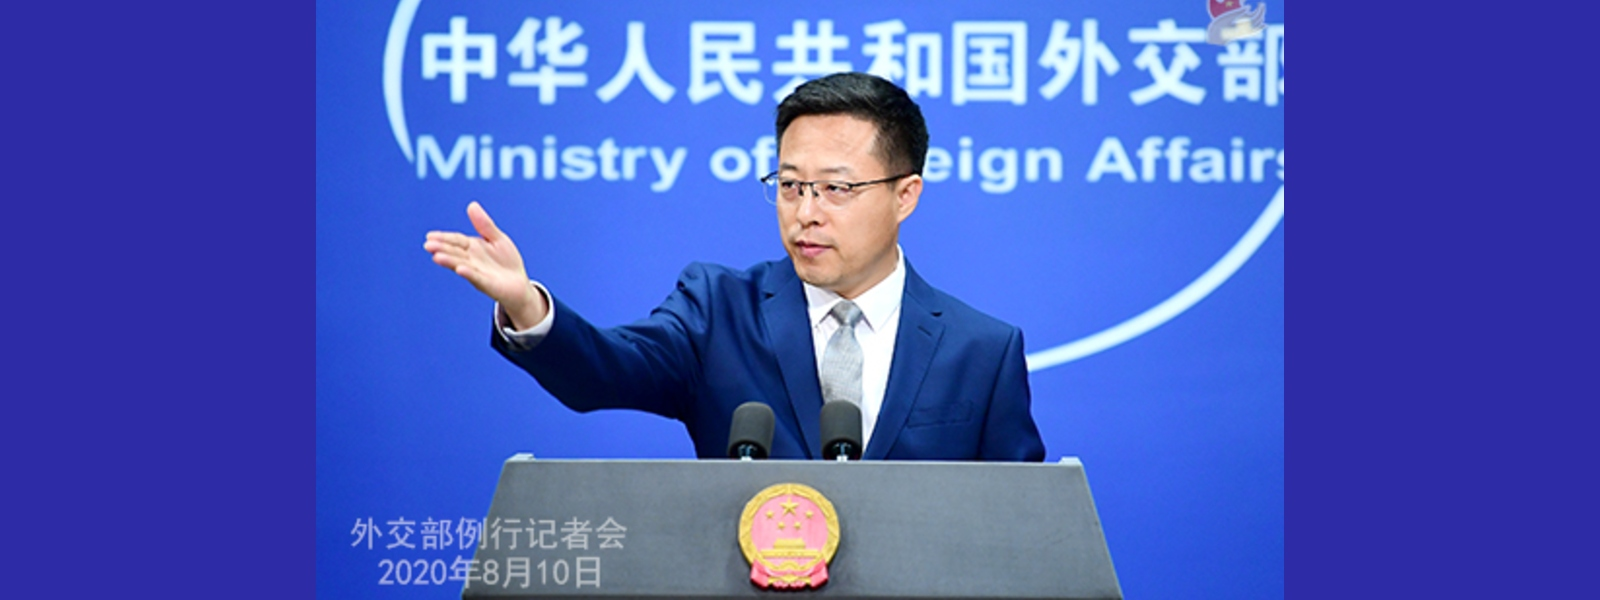 China ready to strengthen cooperation with Sri Lanka: China's Foreign Ministry Spokesperson